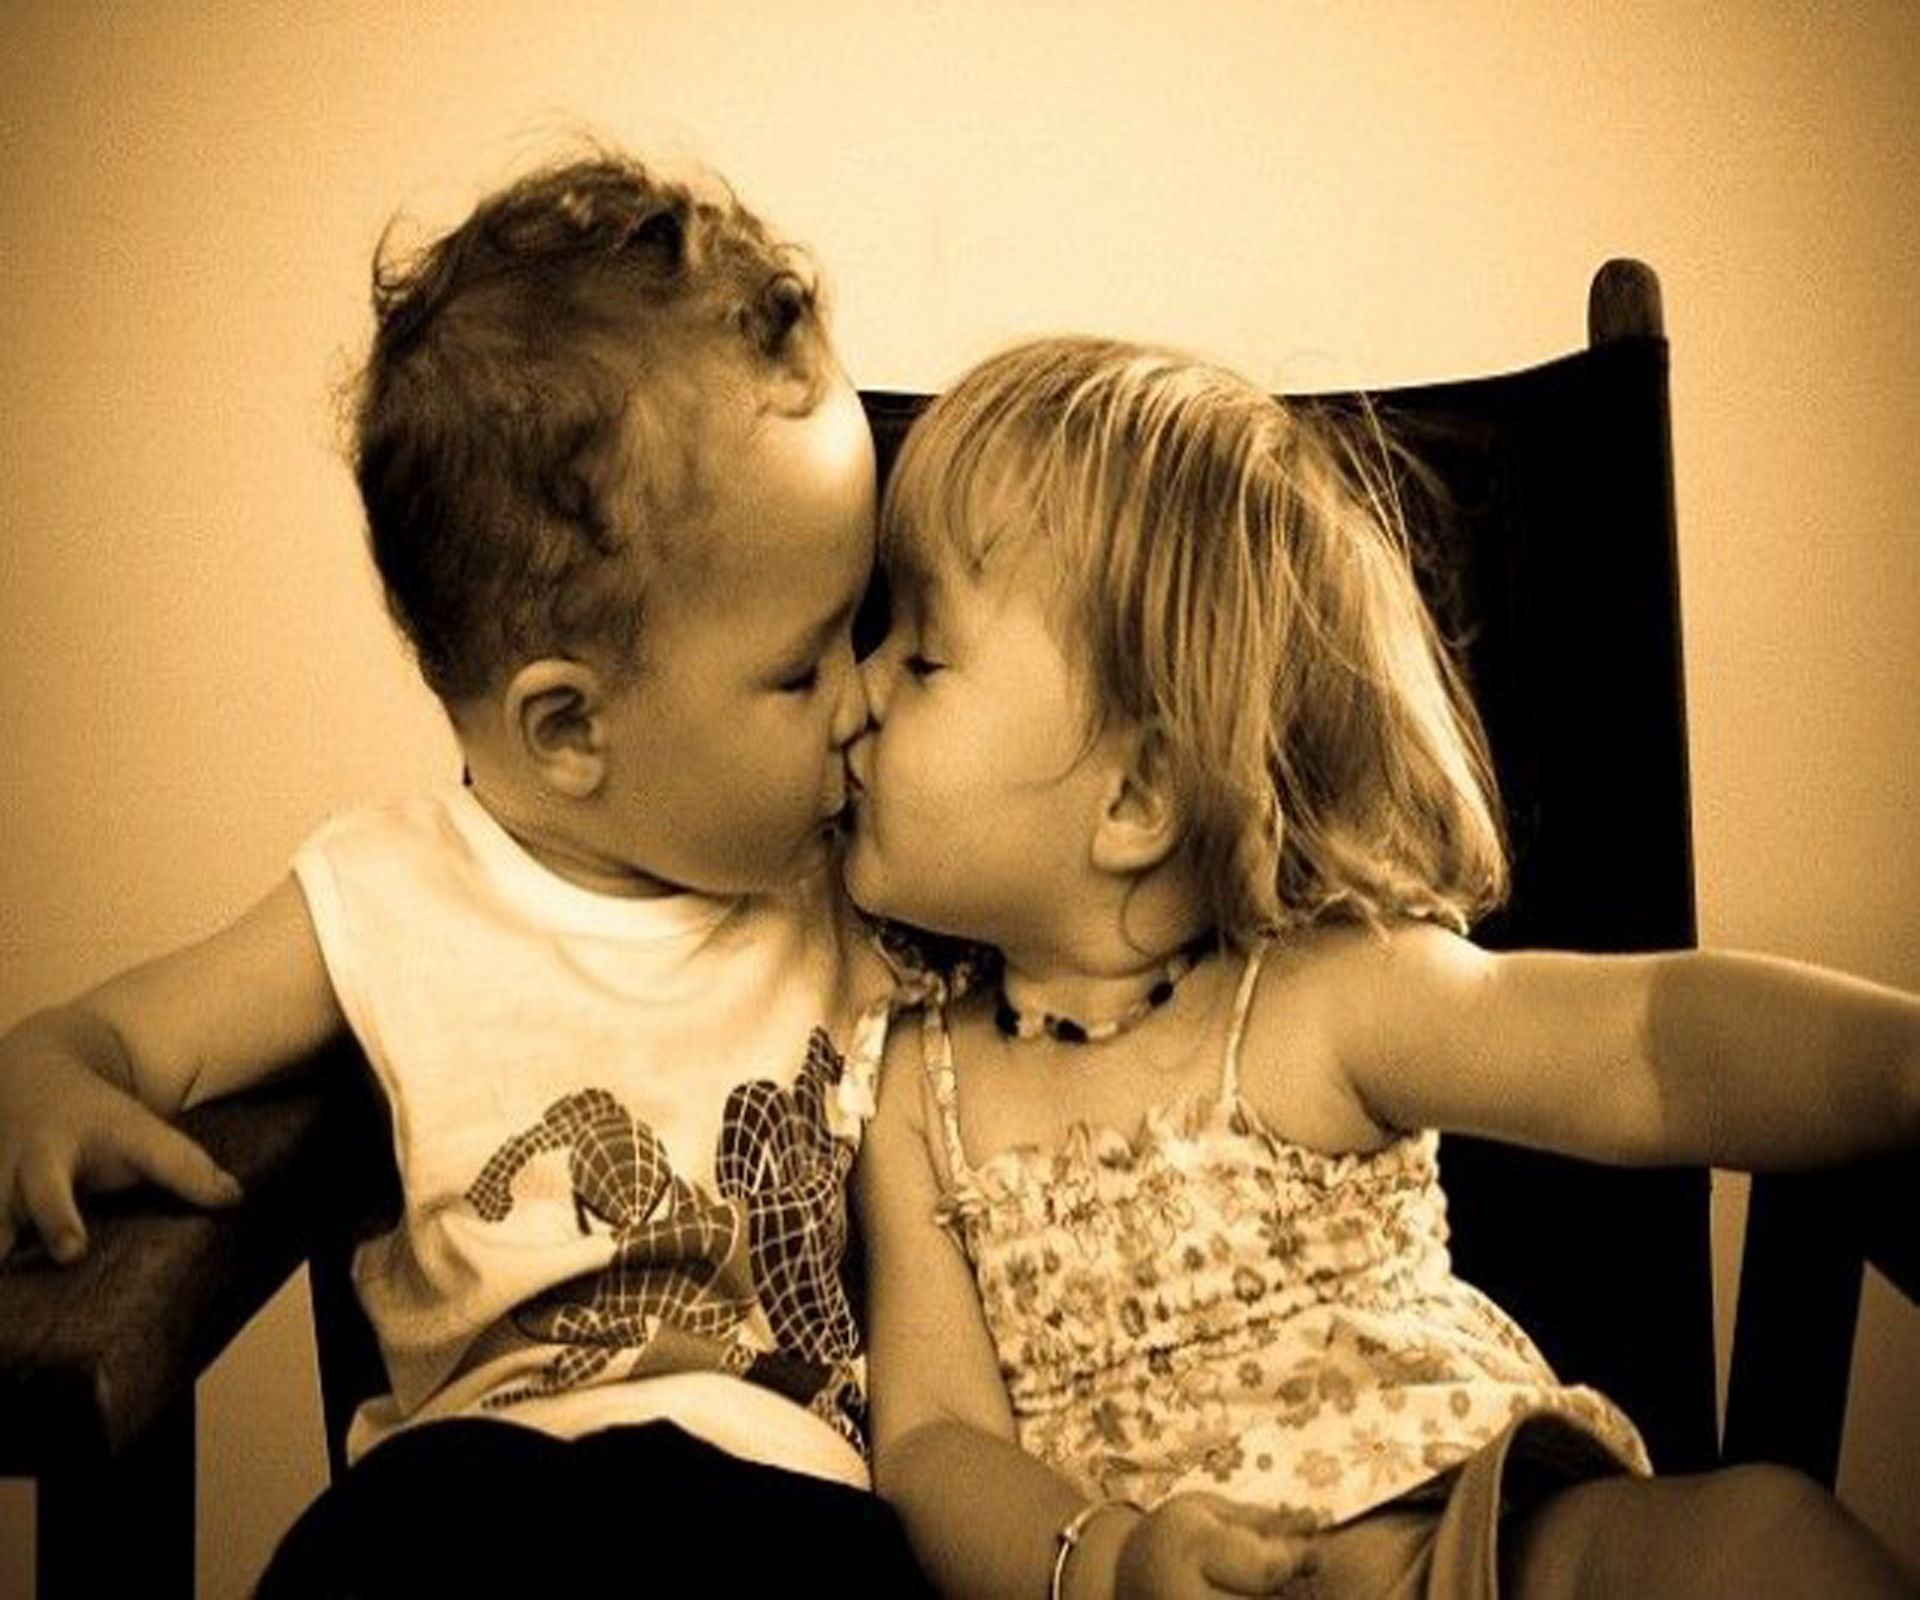 hd wallpapers cute romantic love kiss images 817a—545 kiss image wallpapers 42